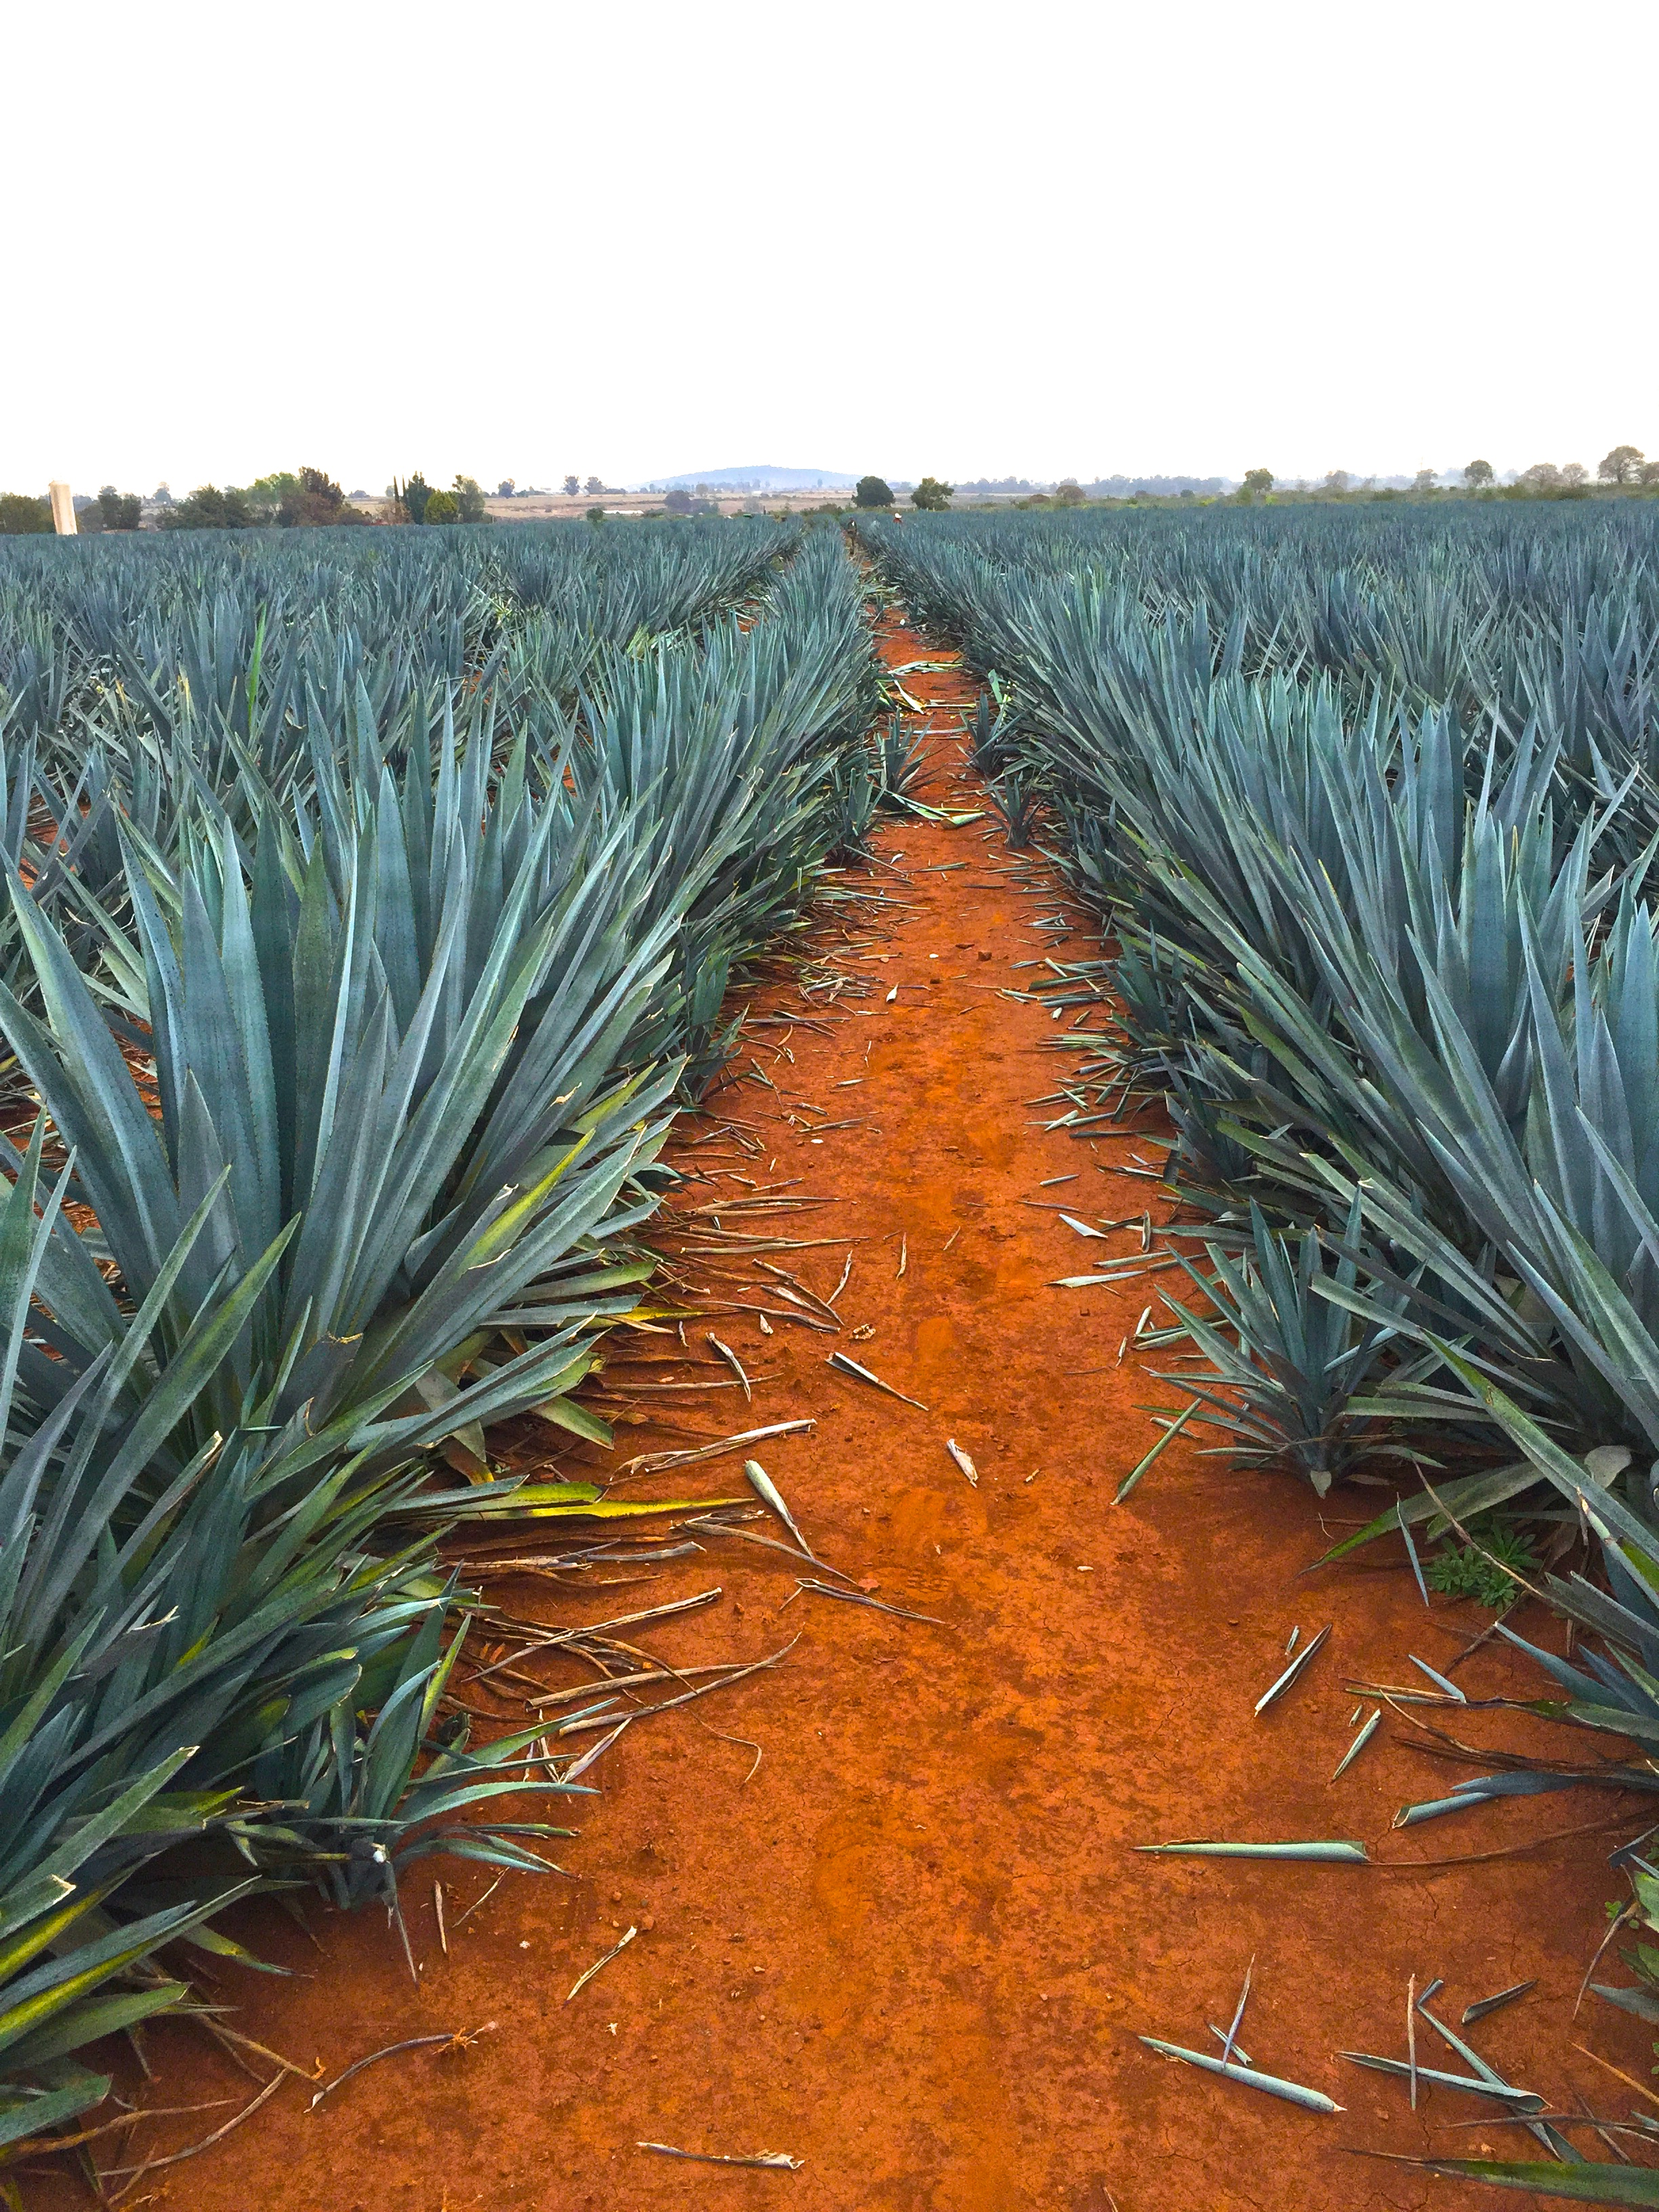 They're called Blue Agave for a reason...